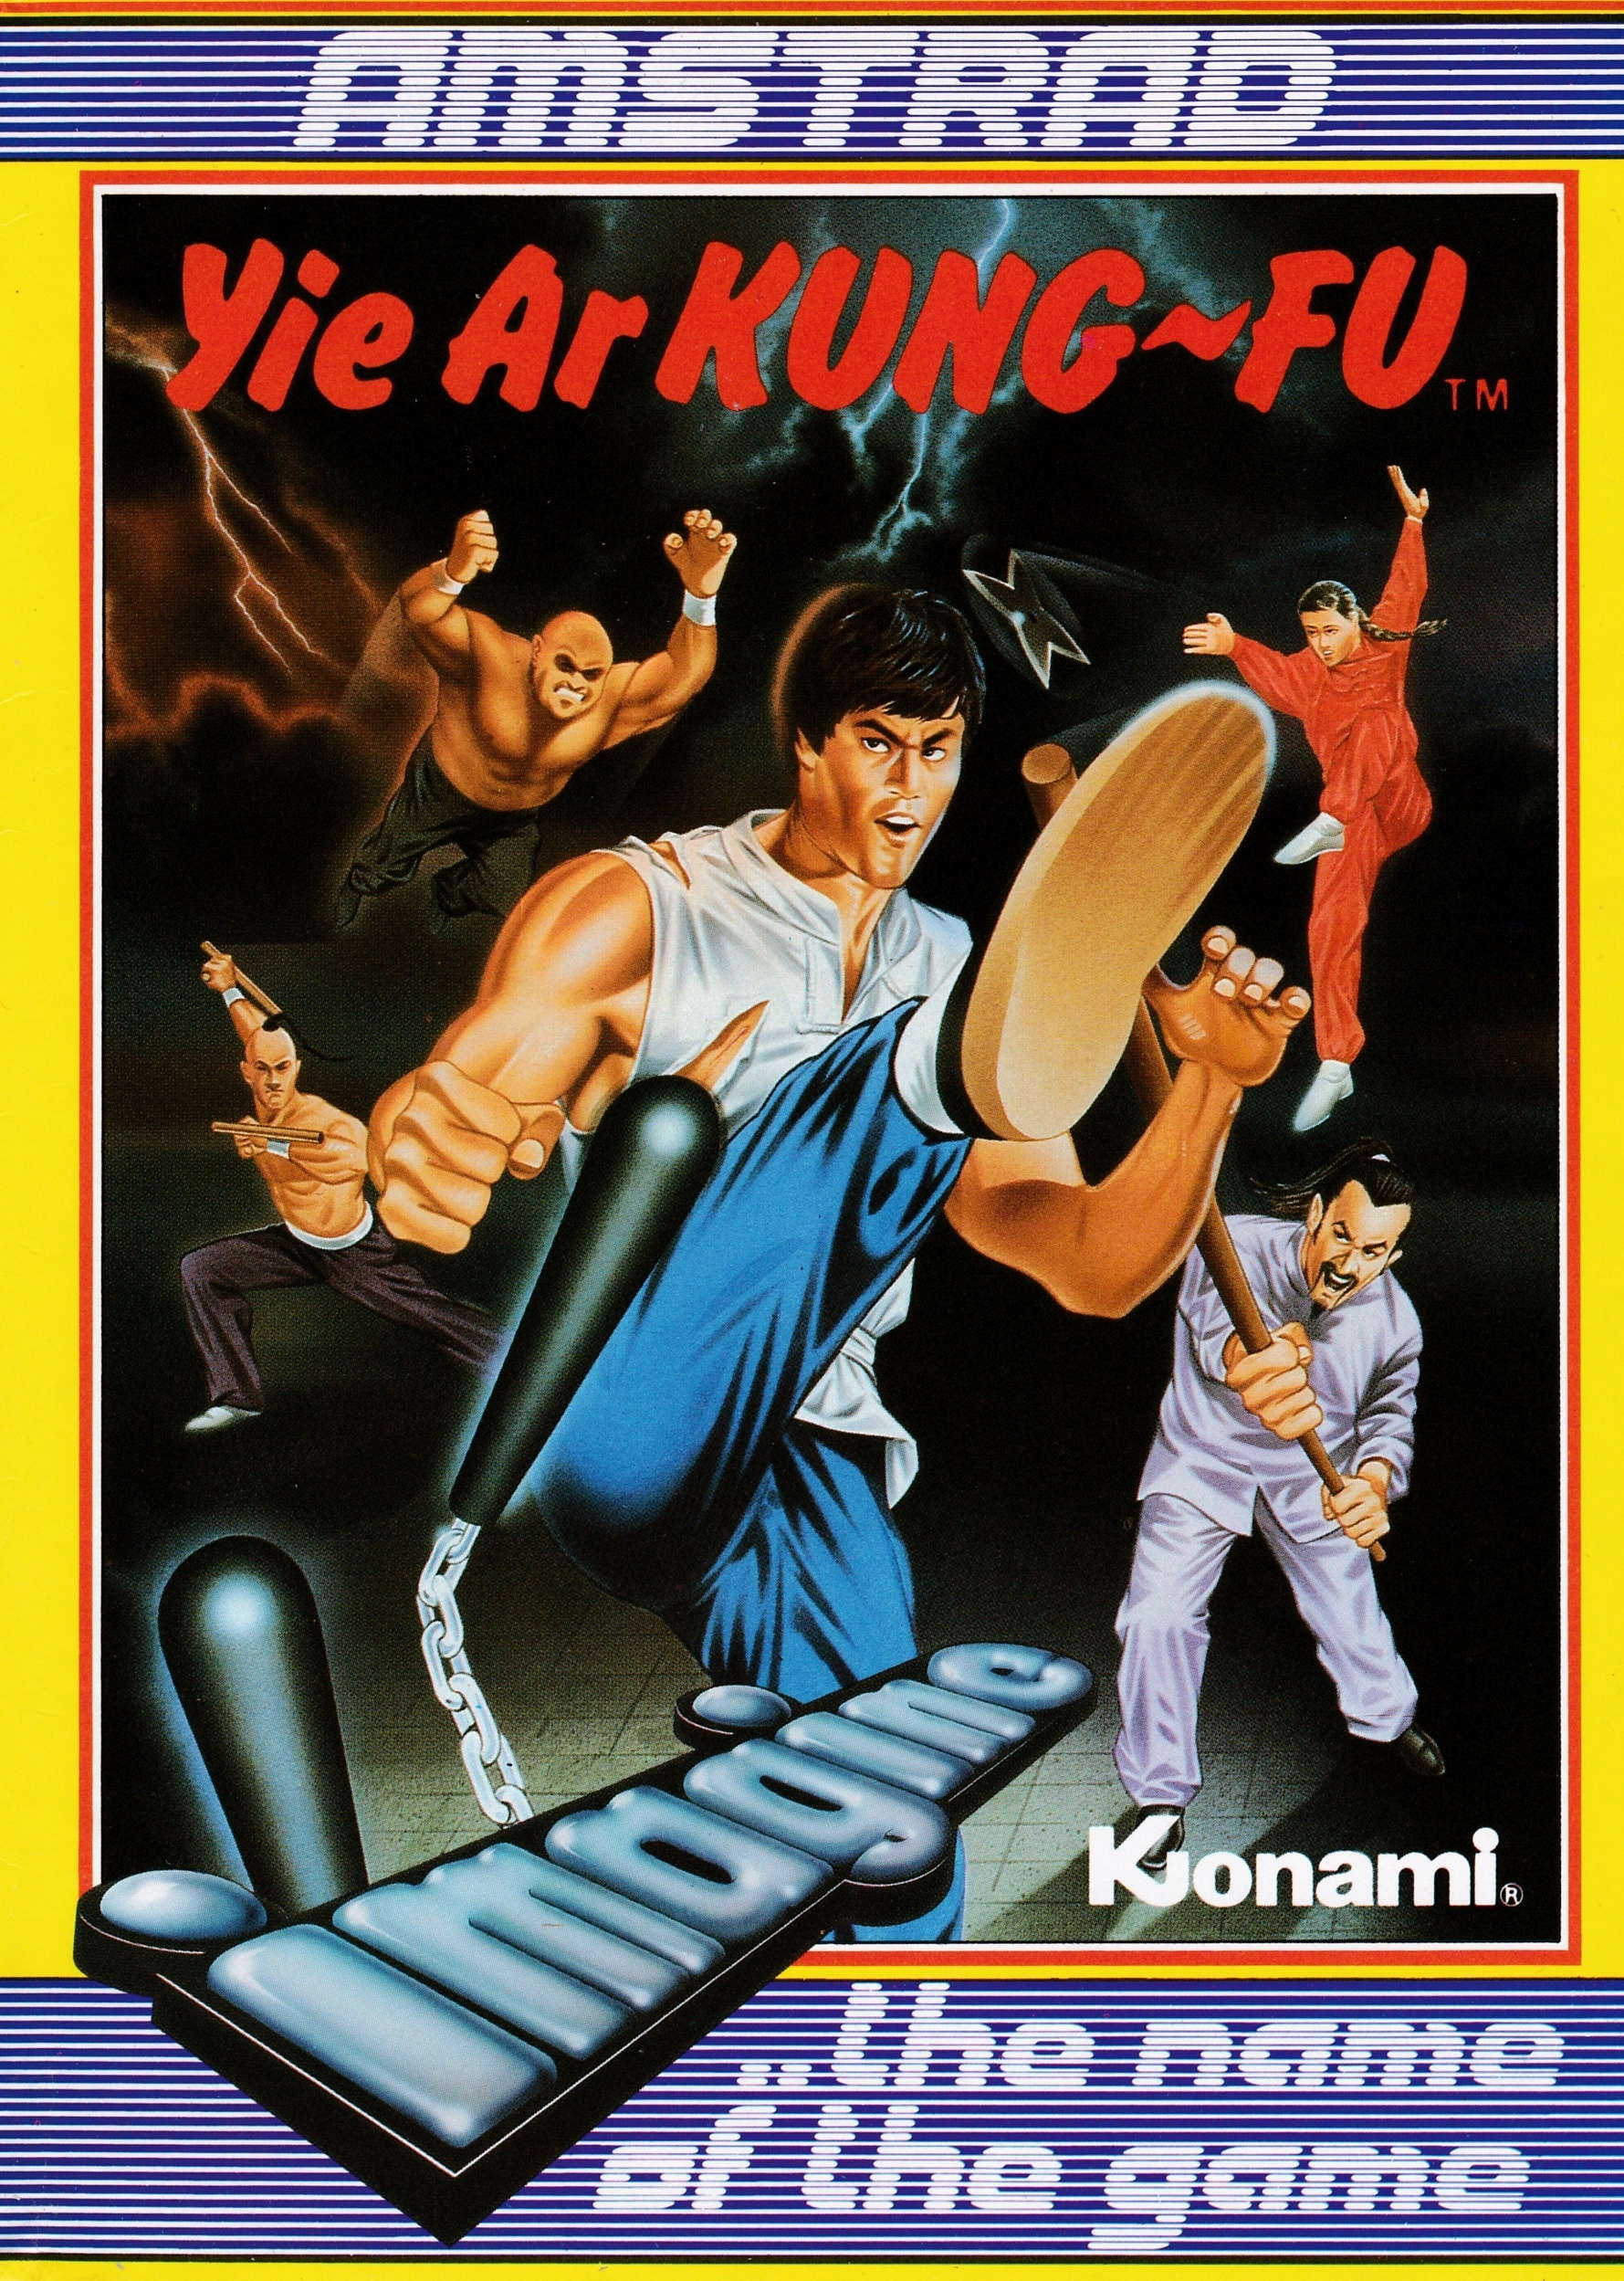 cover of the Amstrad CPC game Yie Ar Kung Fu  by GameBase CPC